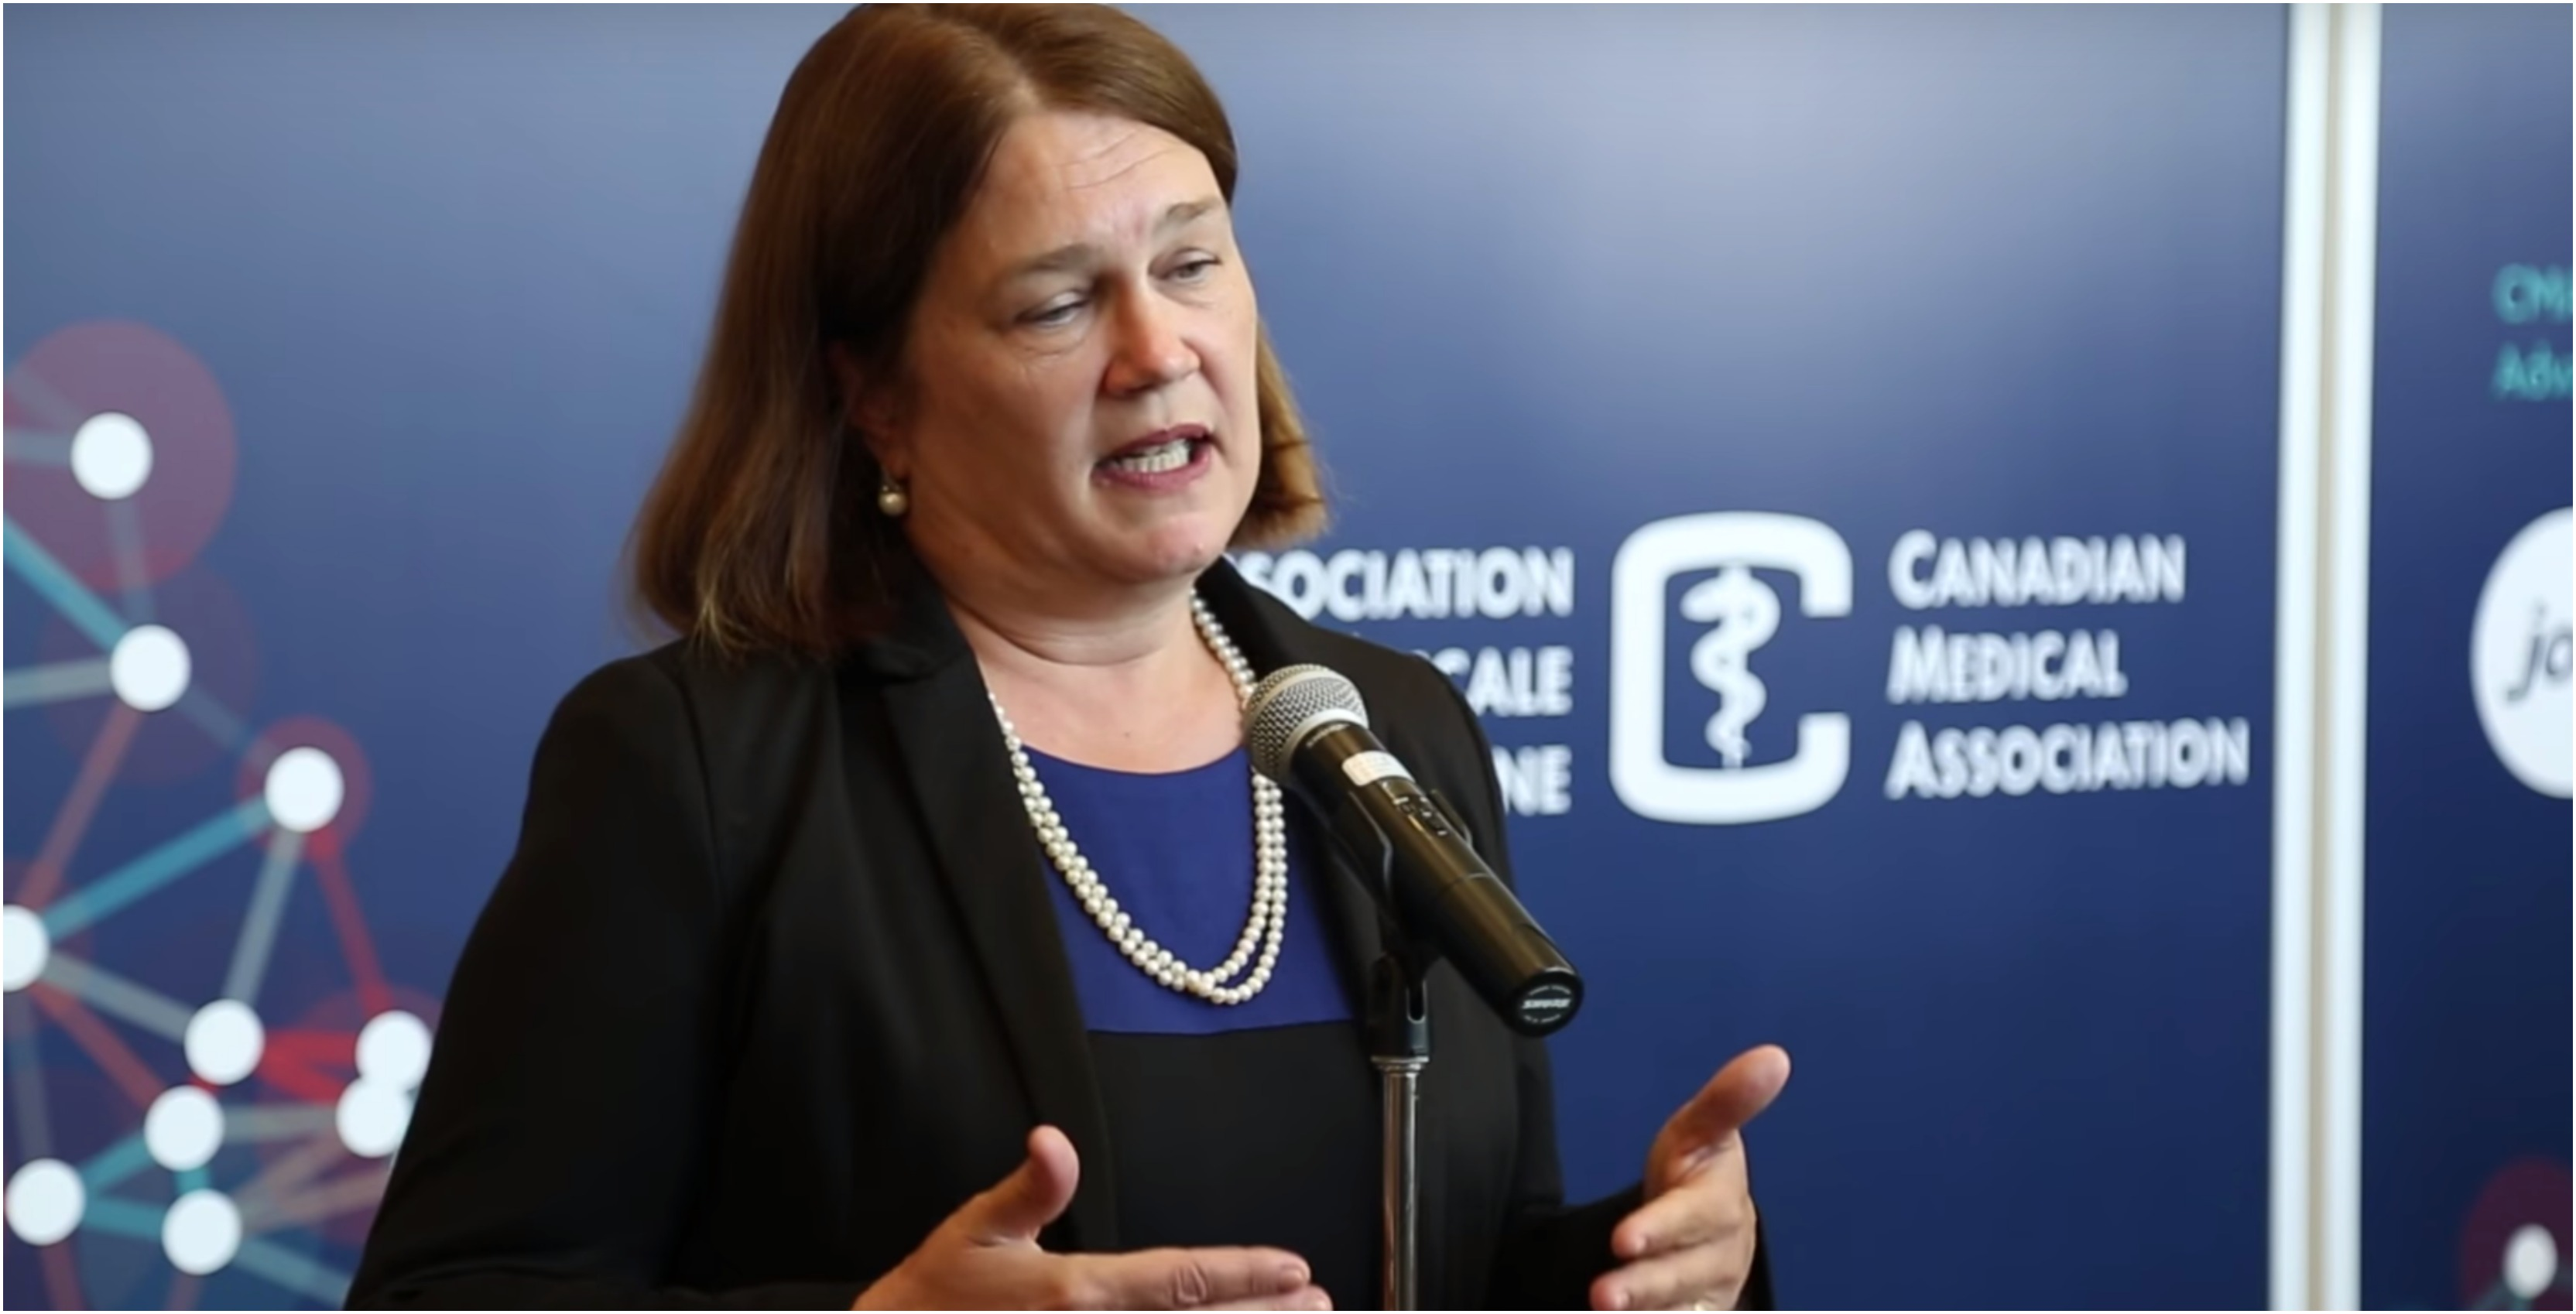 Treasury Board president Jane Philpott quits Trudeau's cabinet over SNC-Lavalin